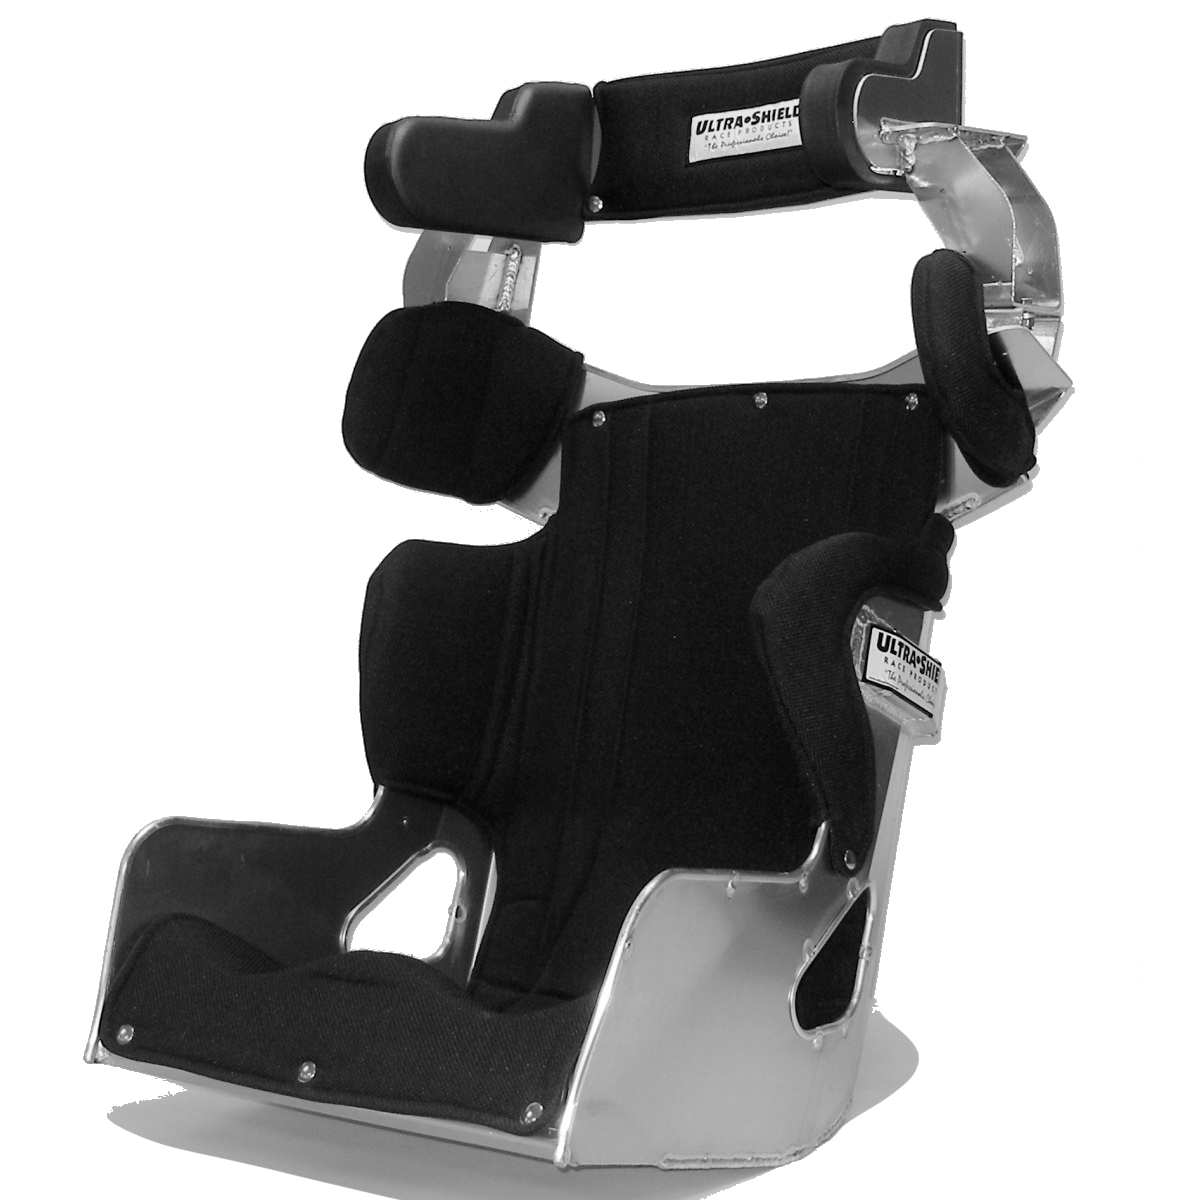 Ultra Shield EF26100 Seat, 2019 Economy Full Containment Halo, 16 in Wide, 10 Degree Layback, Snap Cover Included, Aluminum, Natural, Each